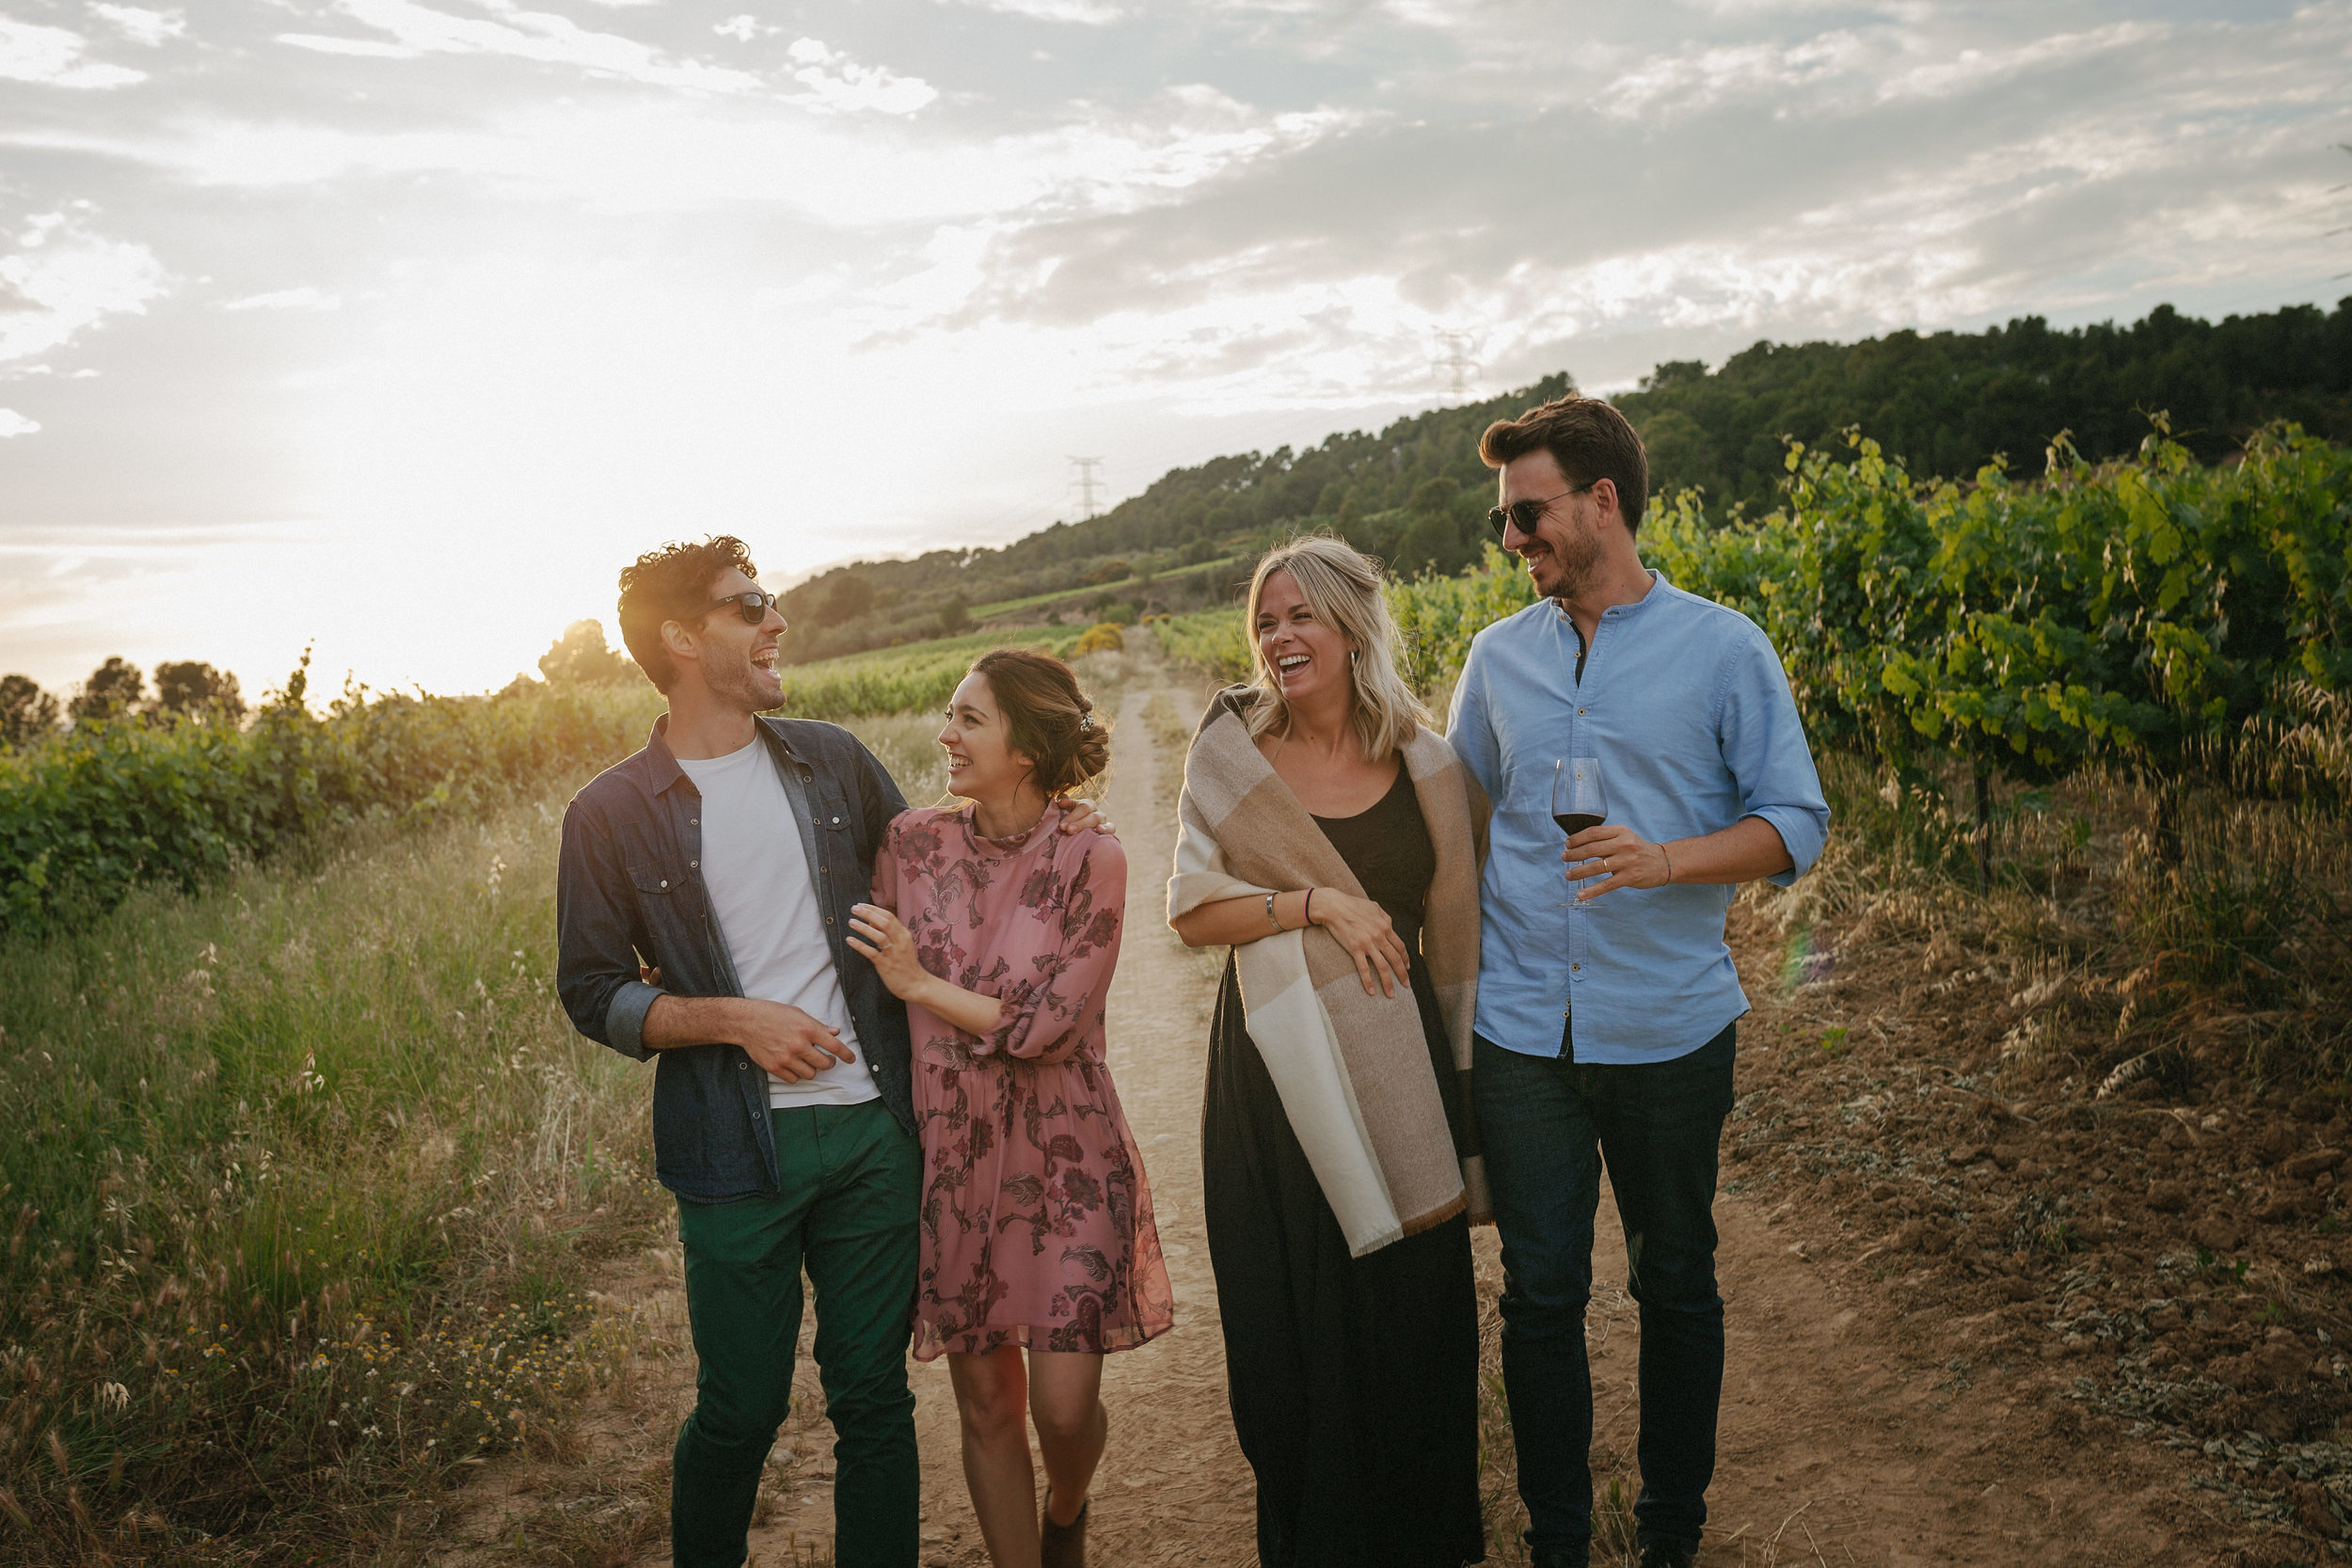 A group of friends laughing and walking on a vineyard